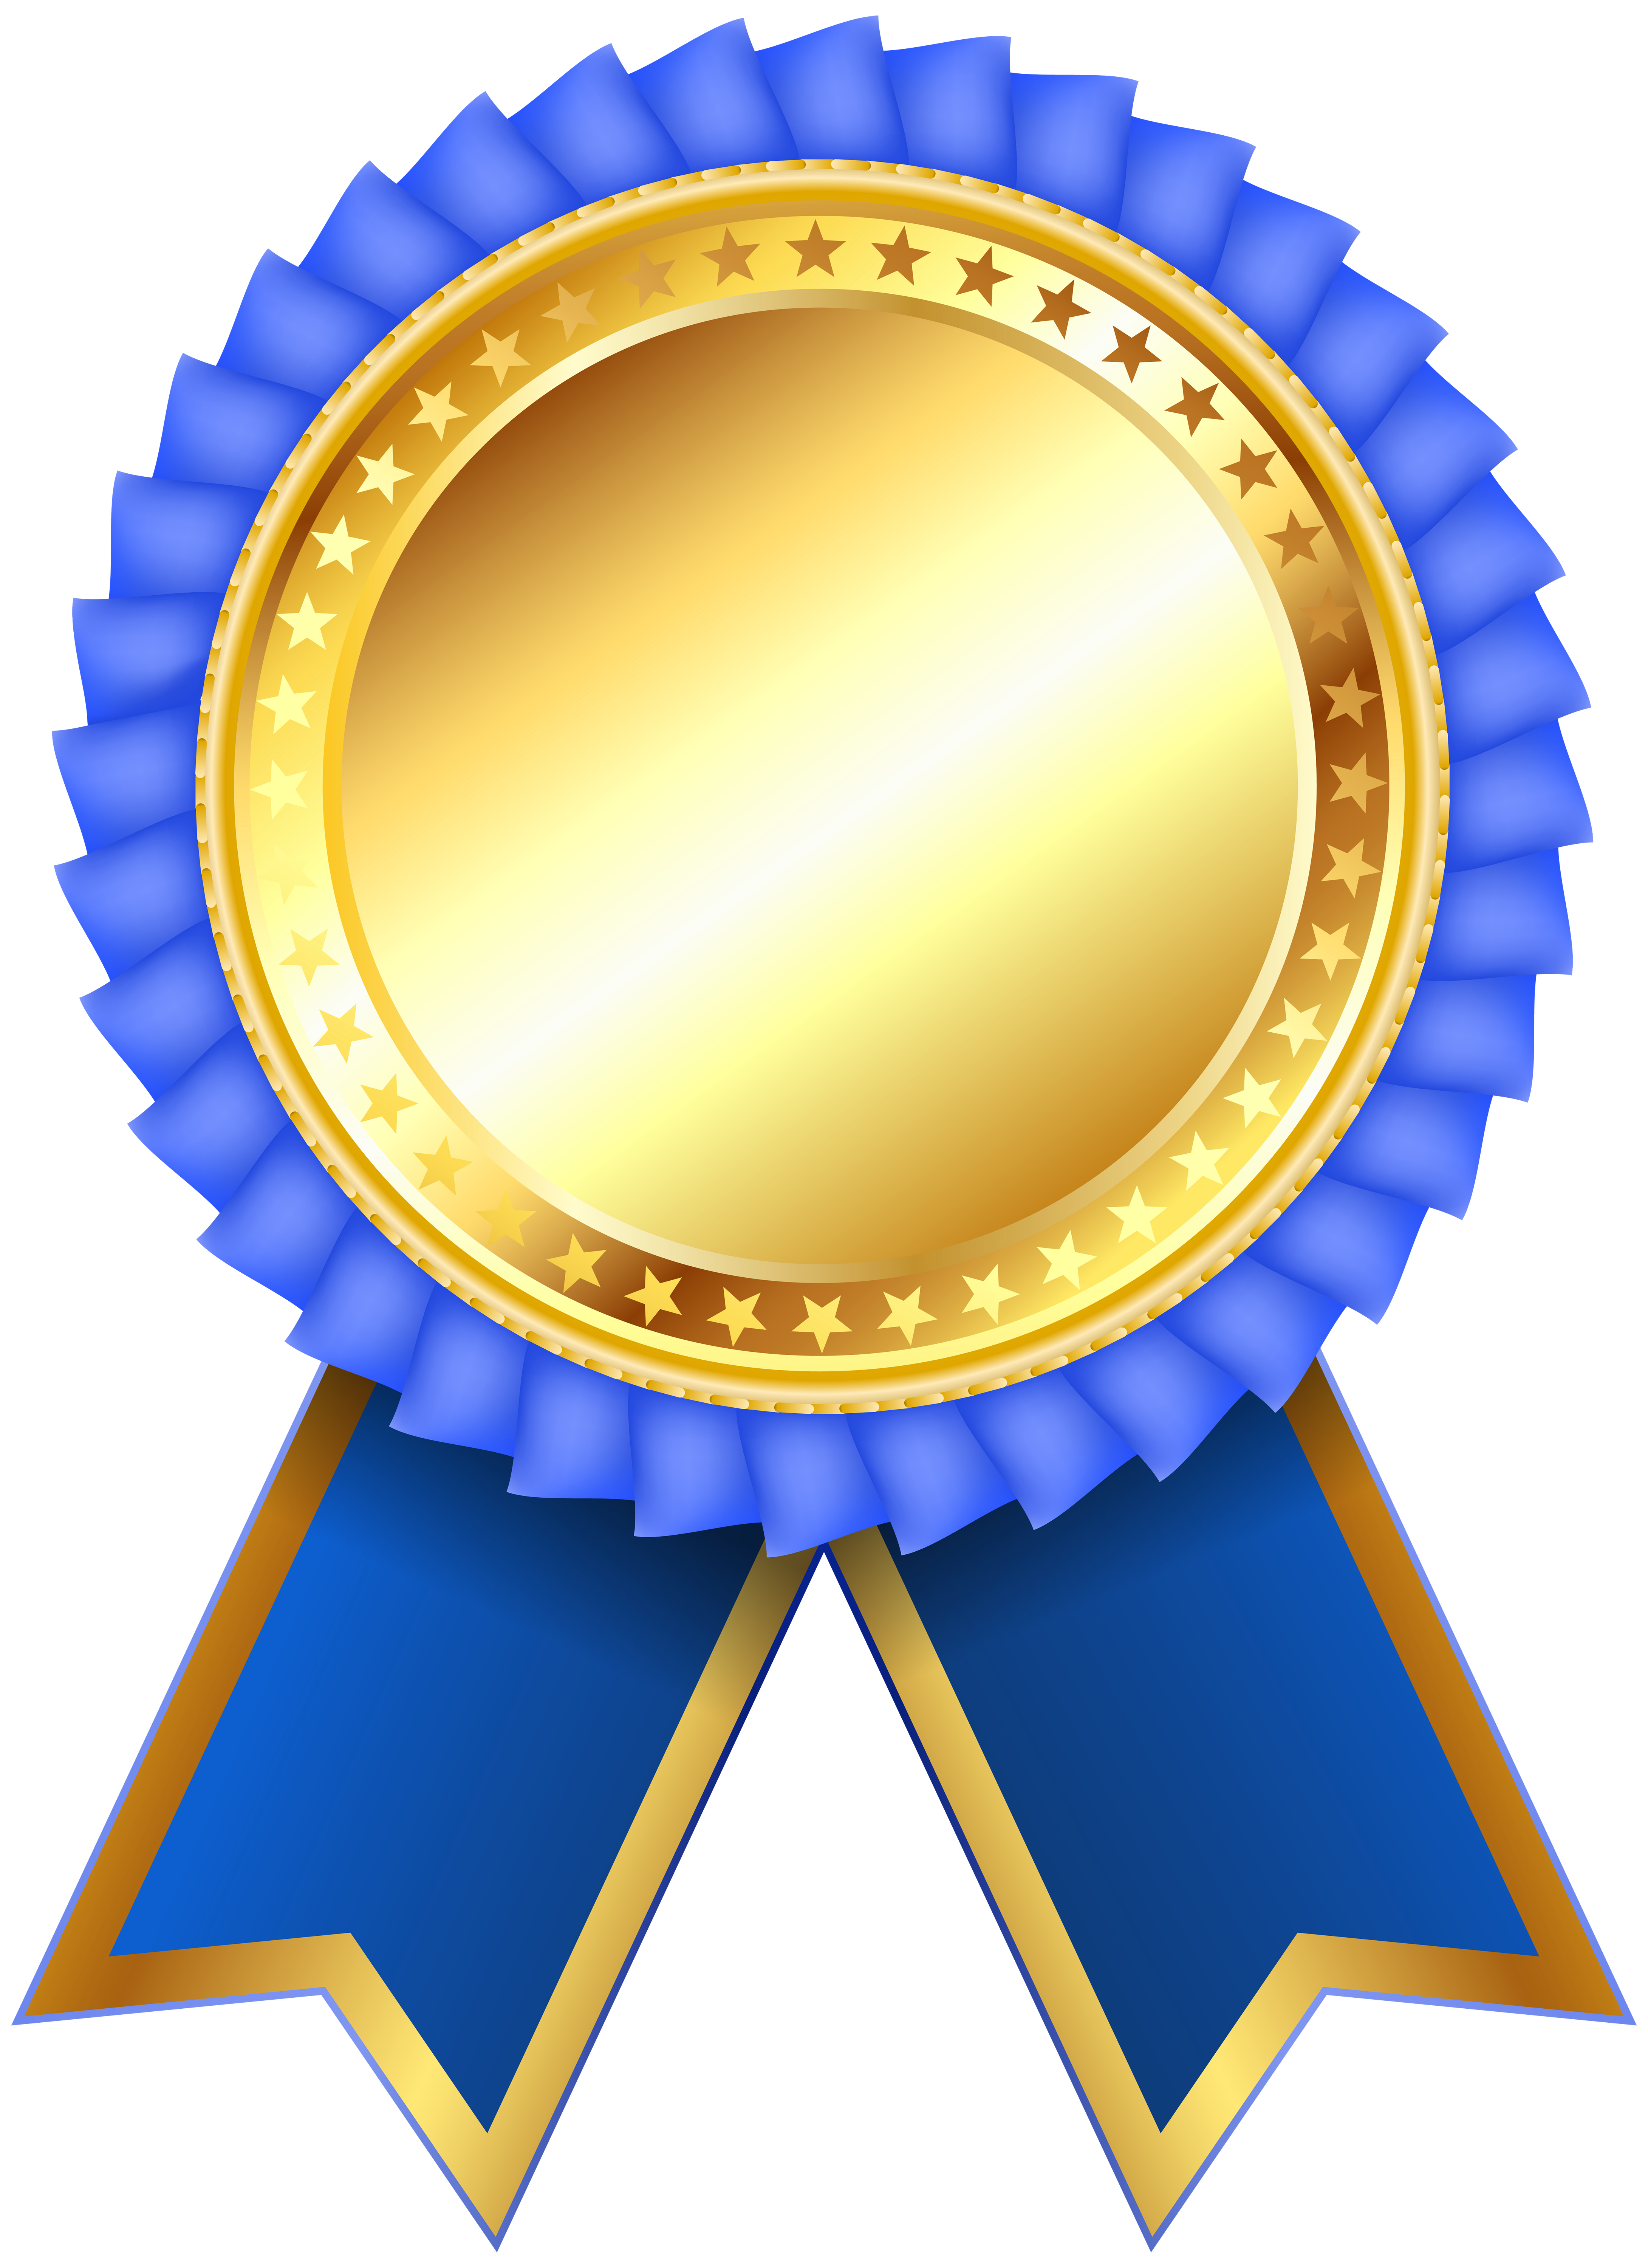 collection of high. Award clipart transparent background